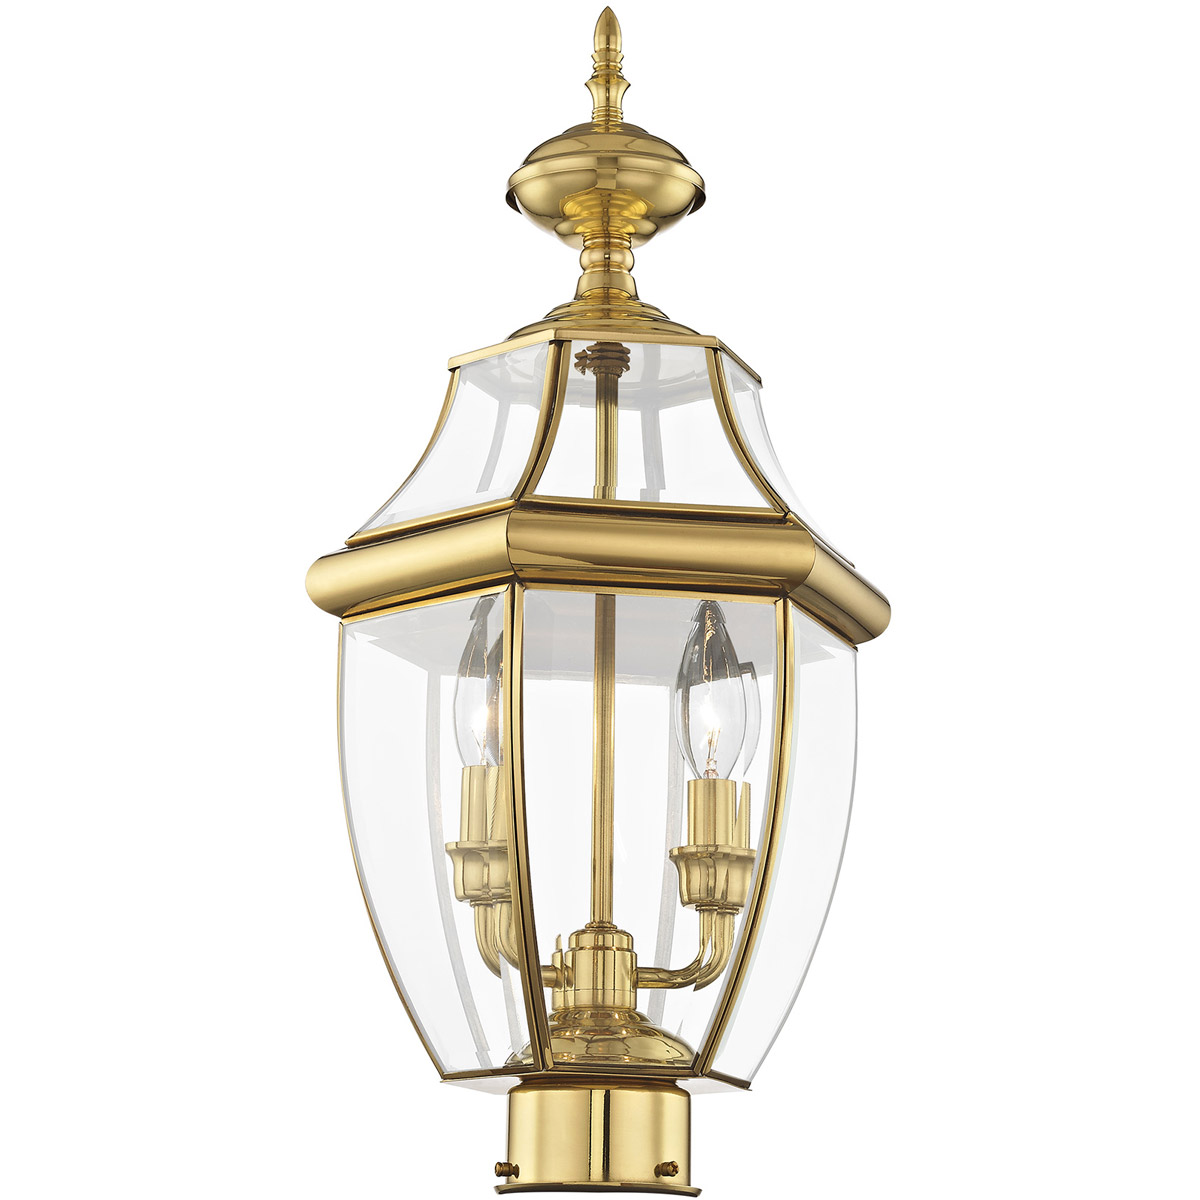 Livex Lighting 2254-01 Monterey 2 Light Outdoor Antique Brass Finish Solid Brass Post Head with Clear Beveled Glass